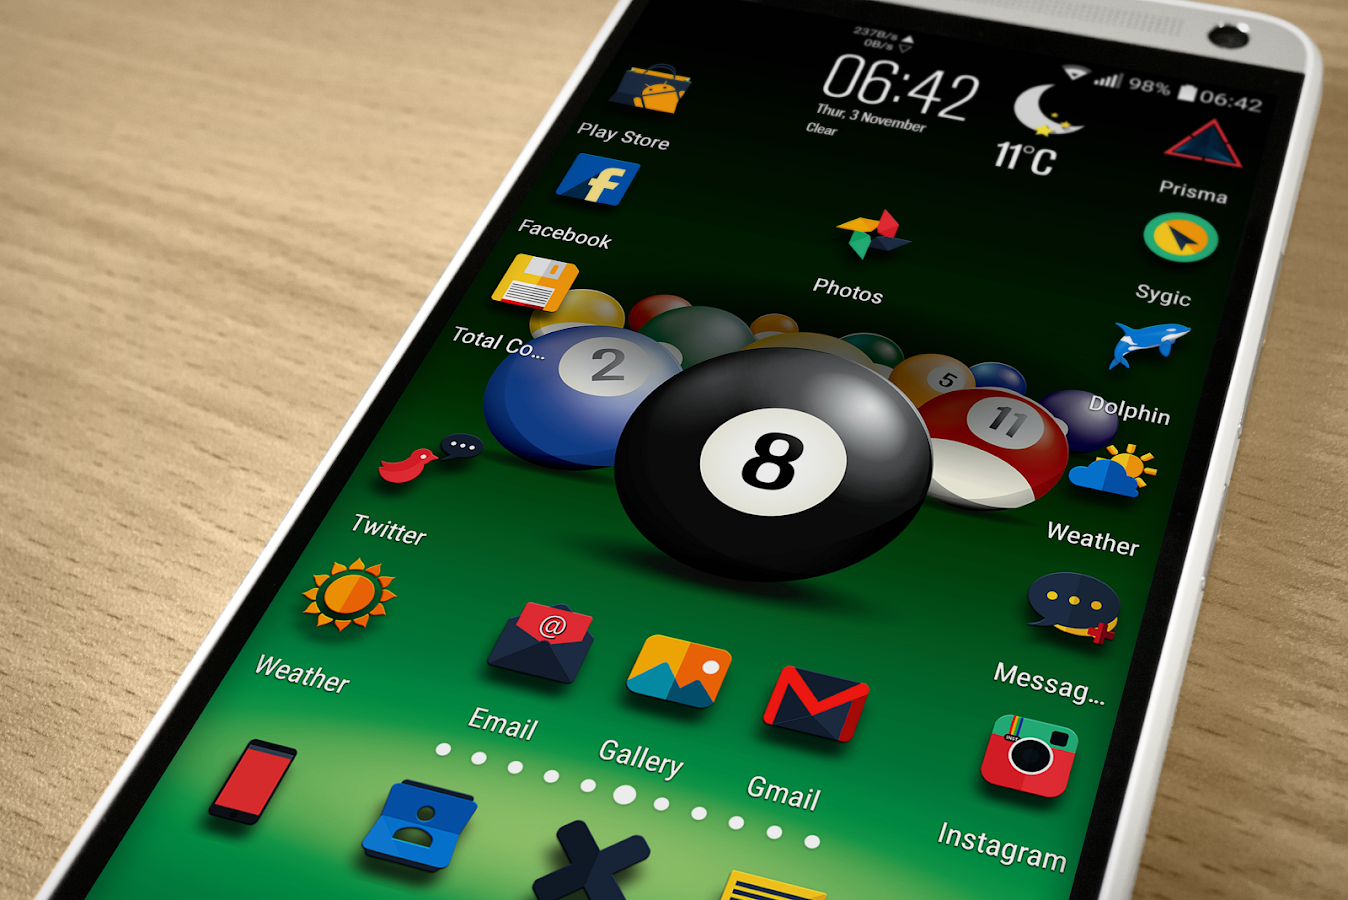 Ergon - Icon Pack Screenshot 10